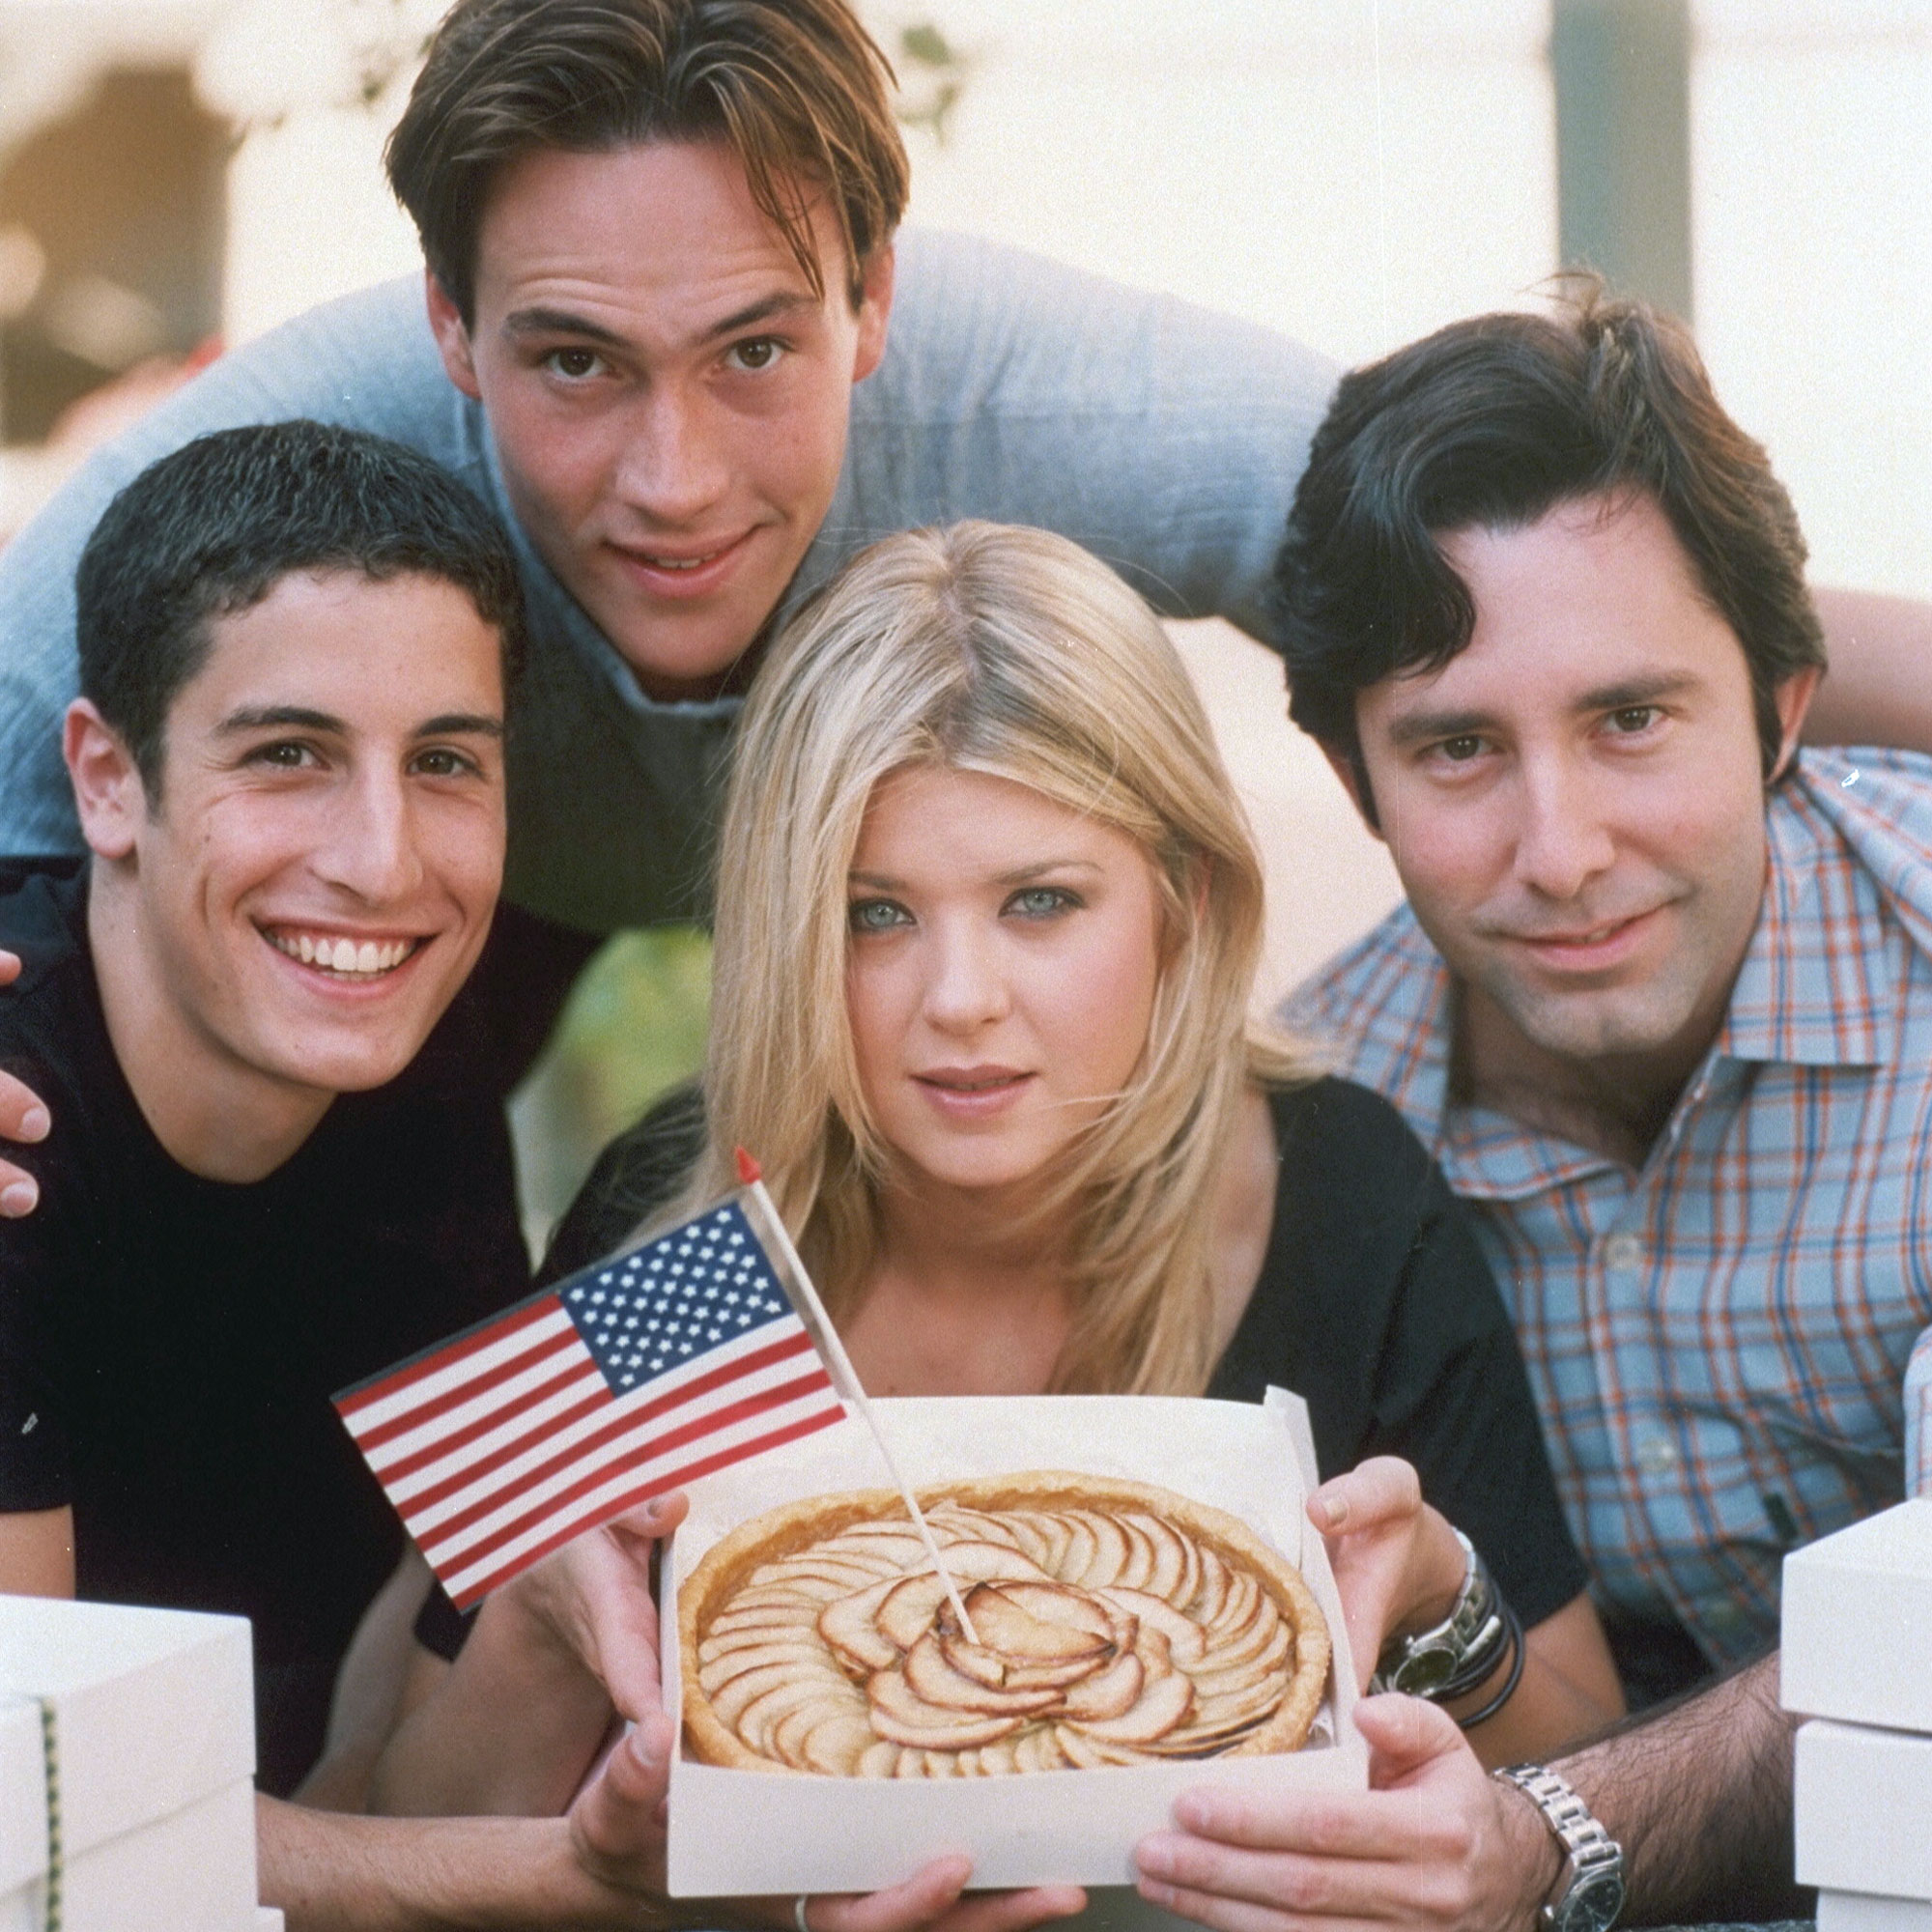 100 Images of American Pie Images Photos